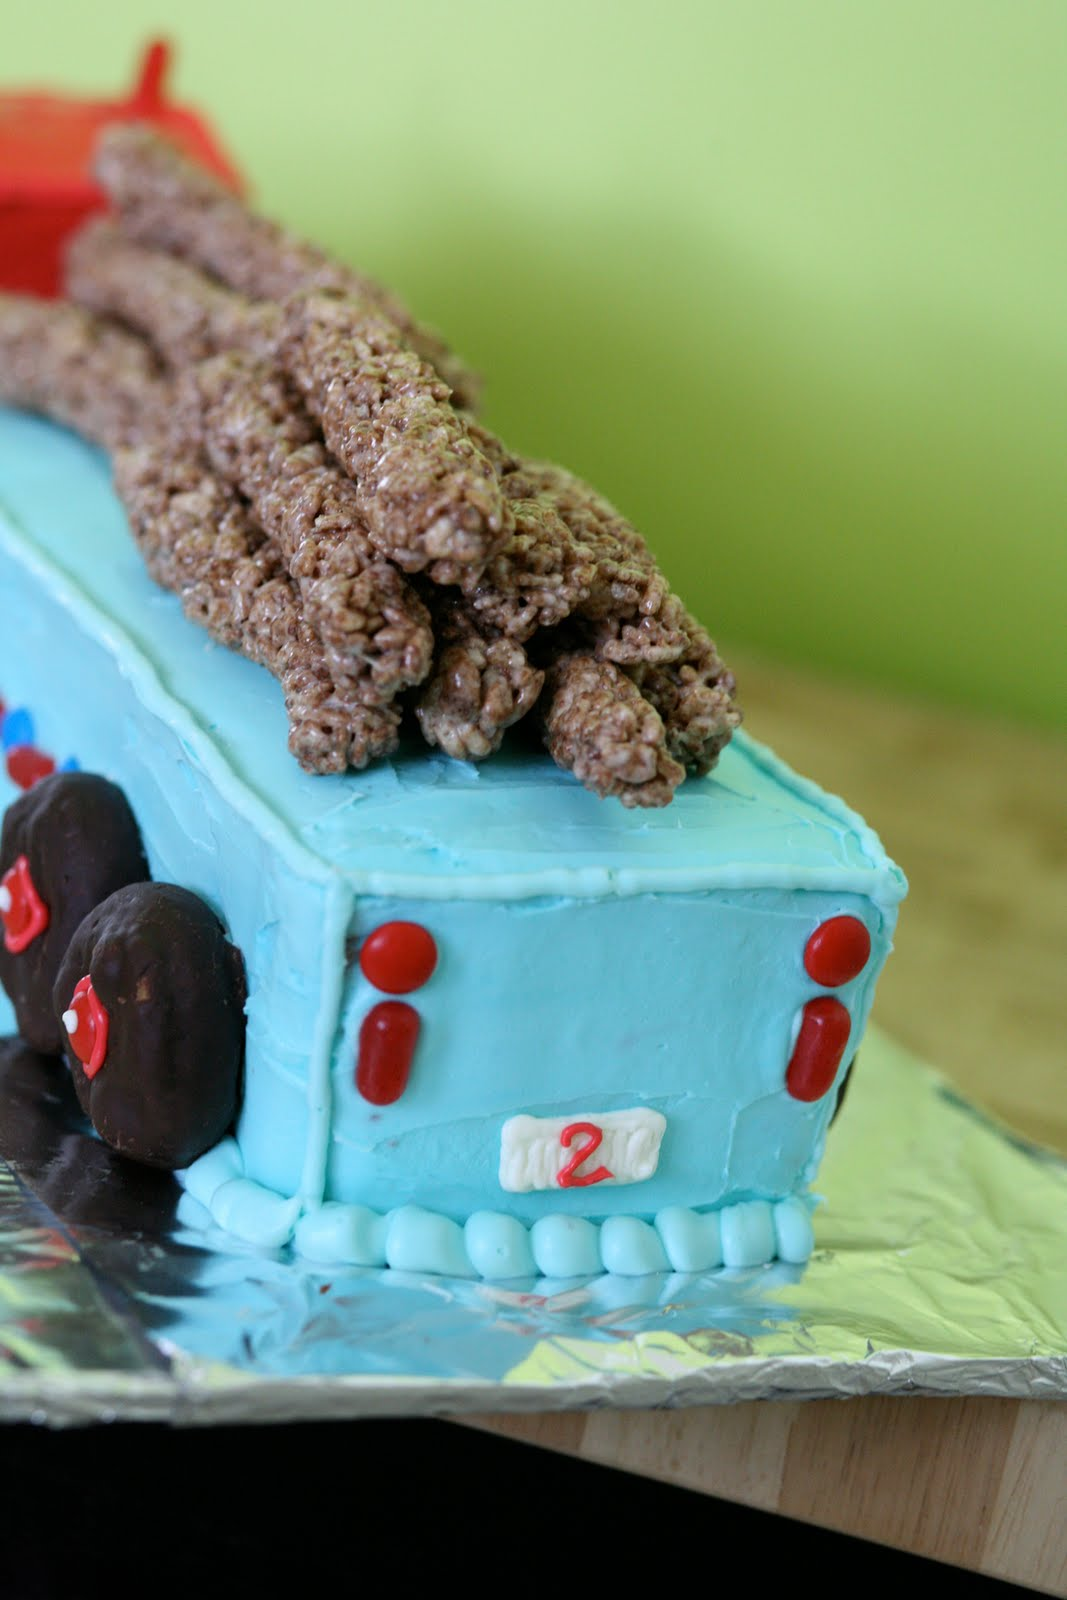 Bloom Box: Semi Truck Birthday Cake